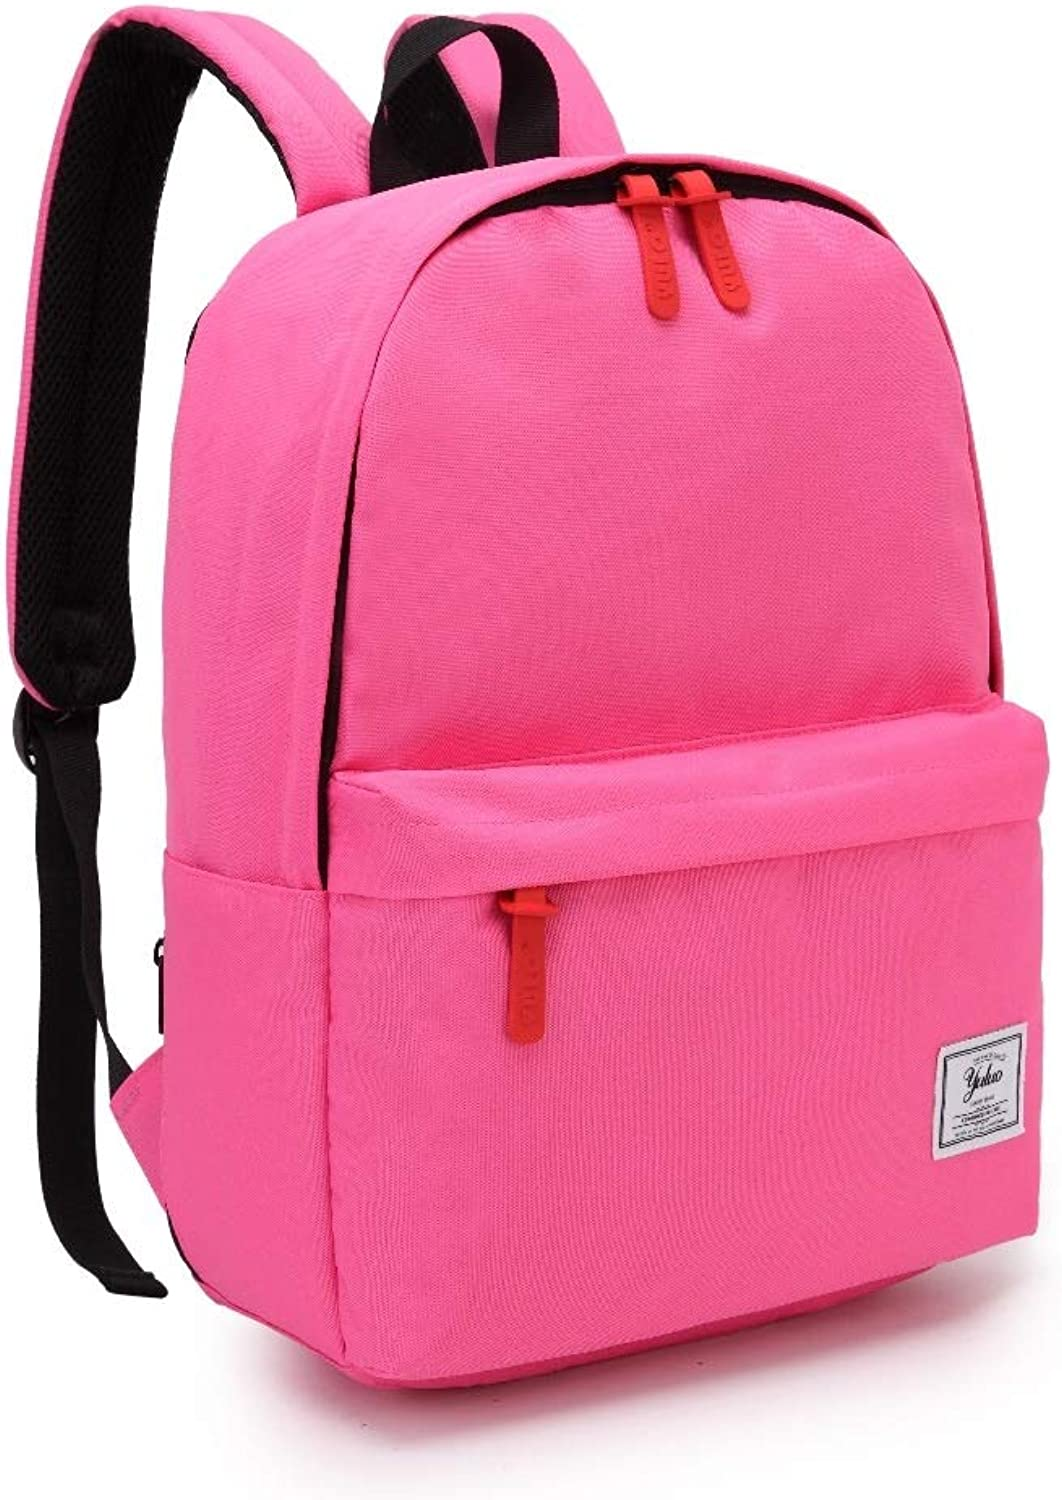 School Backpack, Unisex Classic Lightweight Water Resistant College Rucksack Travel Backpack Fits 14Inch Laptop (color   Pink)